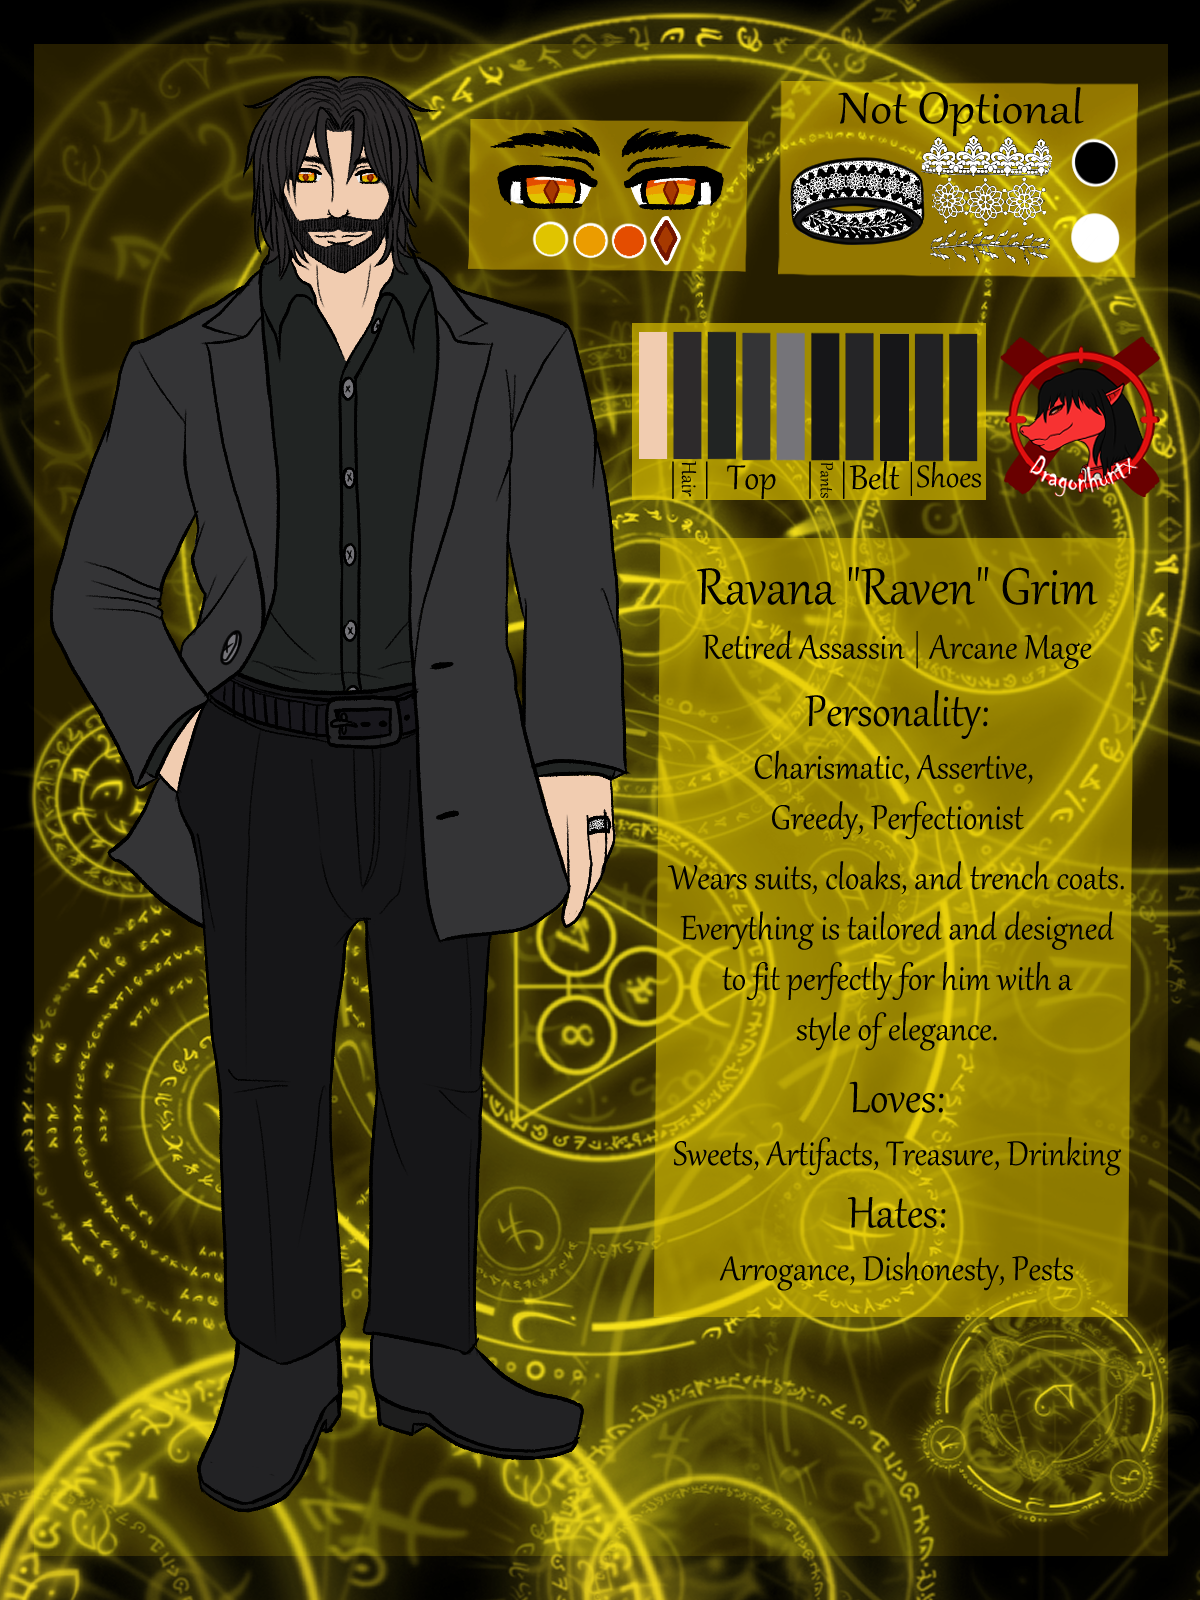 Ravana Grim Reference Sheet A simple ref for my man's character and husband of Belle.Took a while, but he liked how he came out.(I still need to get better at drawing men, bleh.) BackgroundArt: Dragonhuntx #Dragonhuntx#Ravana#Raven#Grim#Ravana Grim#art#digital art#drawing#digital drawing#reference sheet#ref sheet#character sheet#male#man#human#retired#assassin#arcane#mage#rune#runes#magic#suit#style#white#black#beard